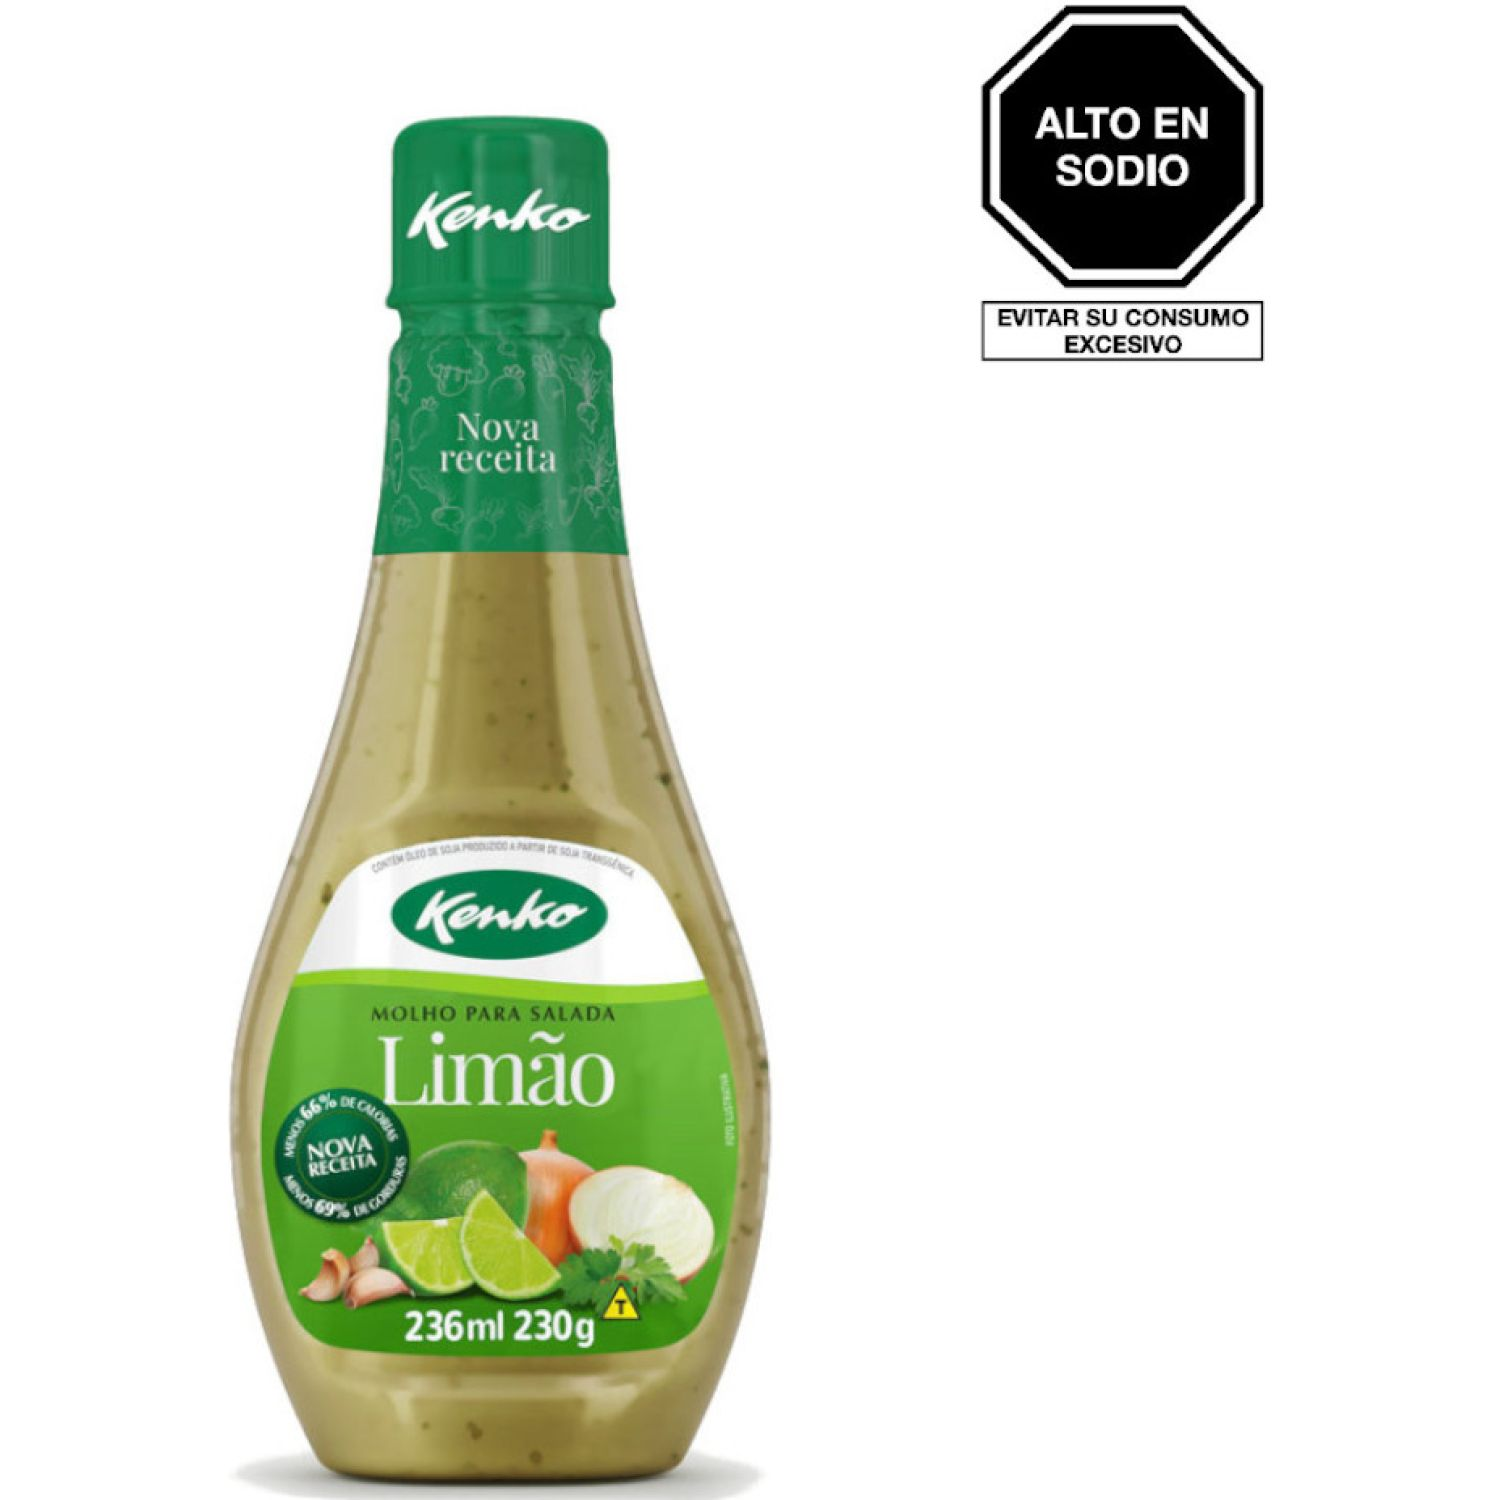 KENKO SALSA LIMON P/ENSALADA 236ML BOT SIN COLOR Vinagreta